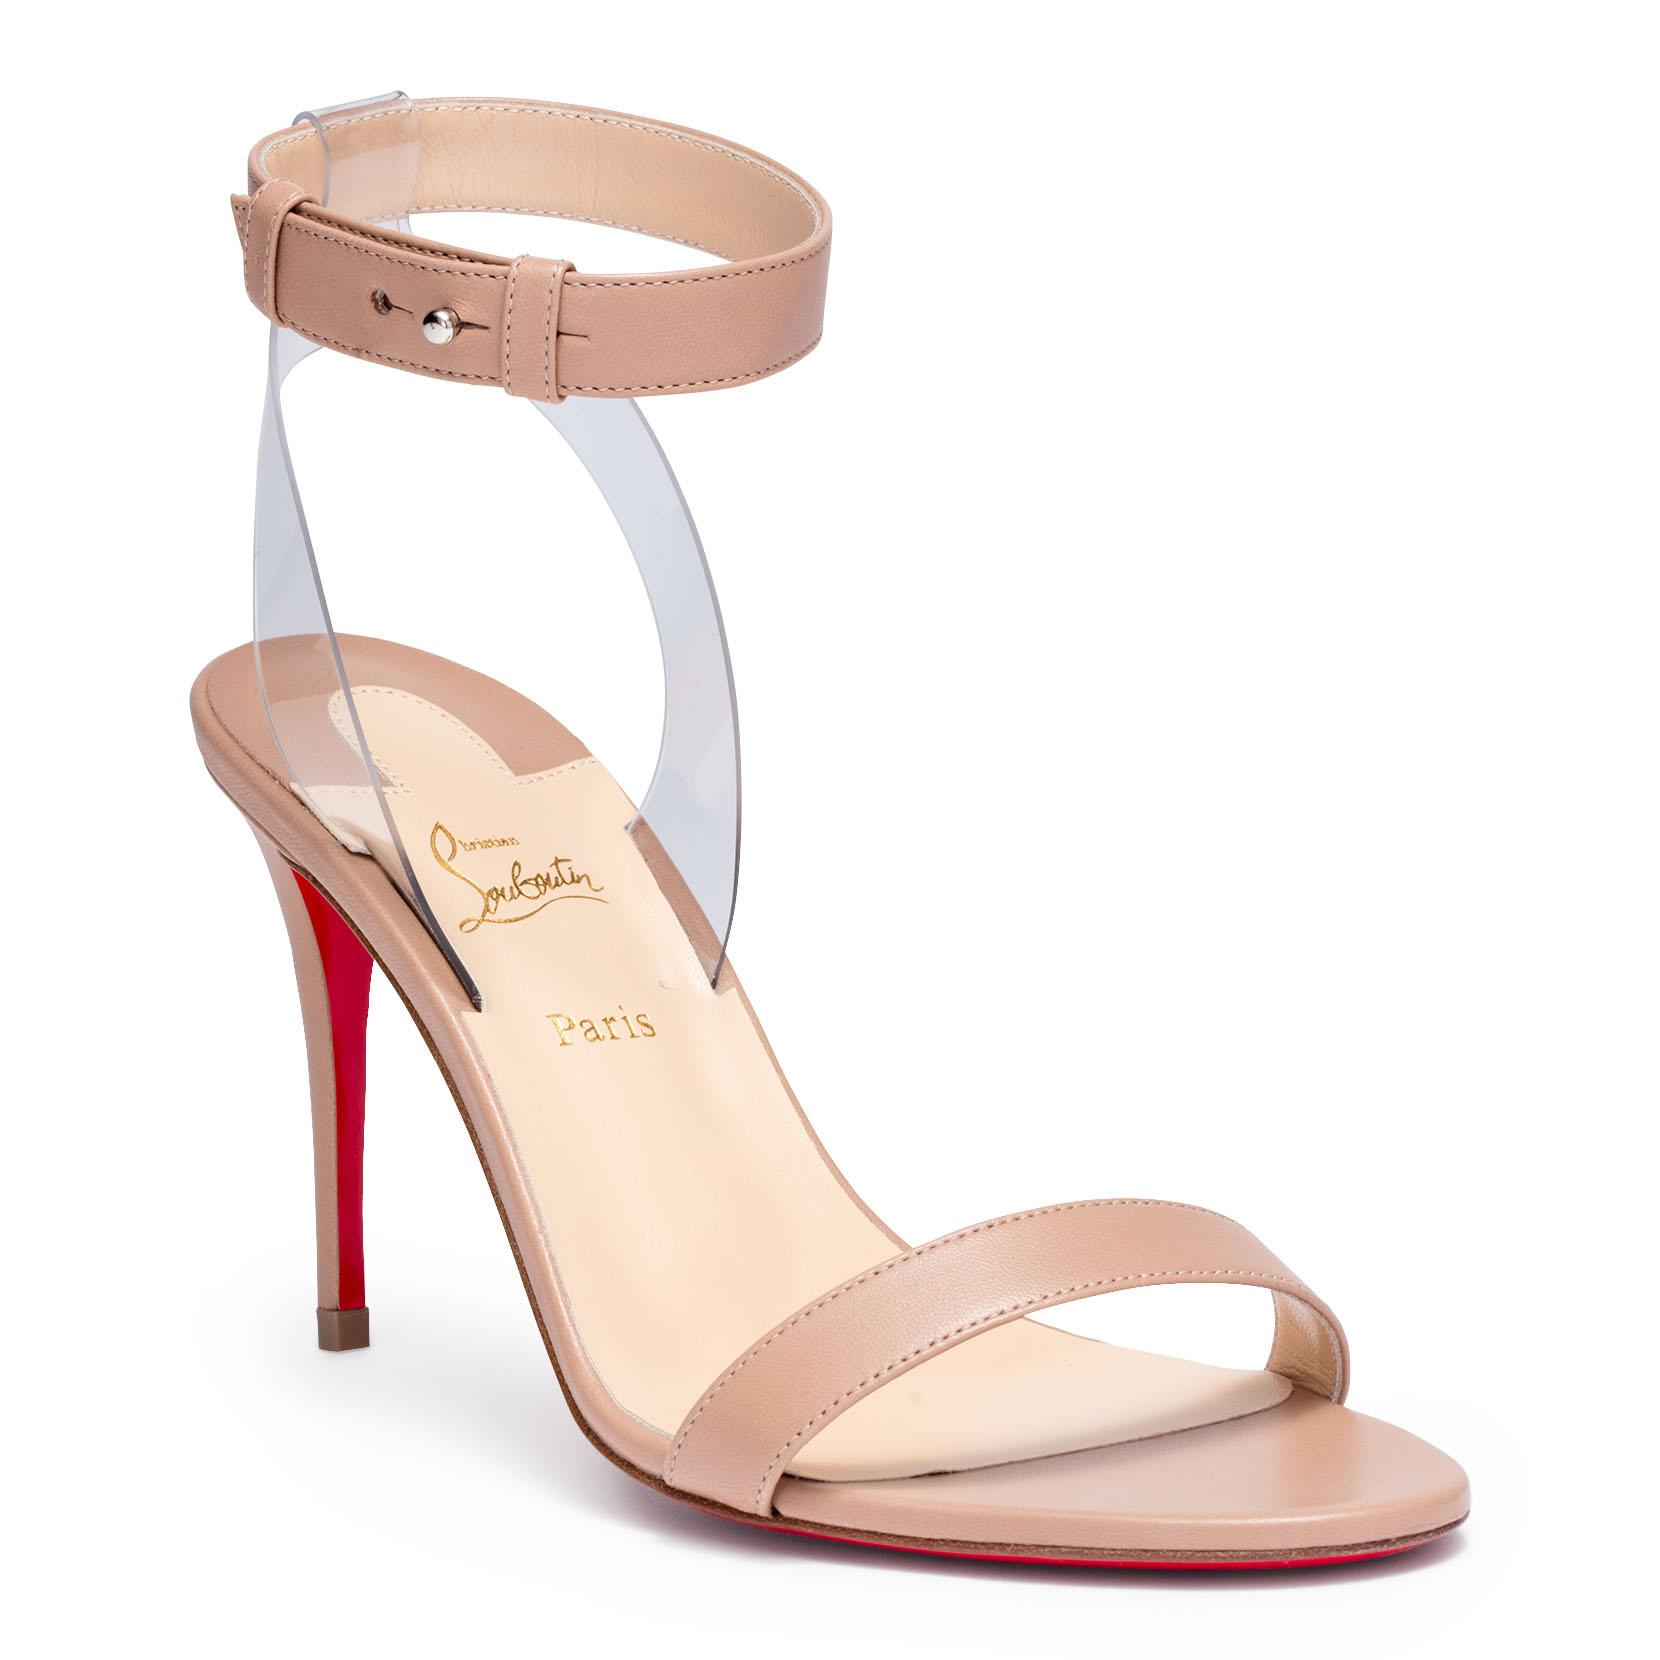 31c84bec92e6 coupon code for lyst christian louboutin patinana strass red sole sandal in  pink c54e3 db6eb  order christian louboutin. womens natural jonatina 85  beige ...